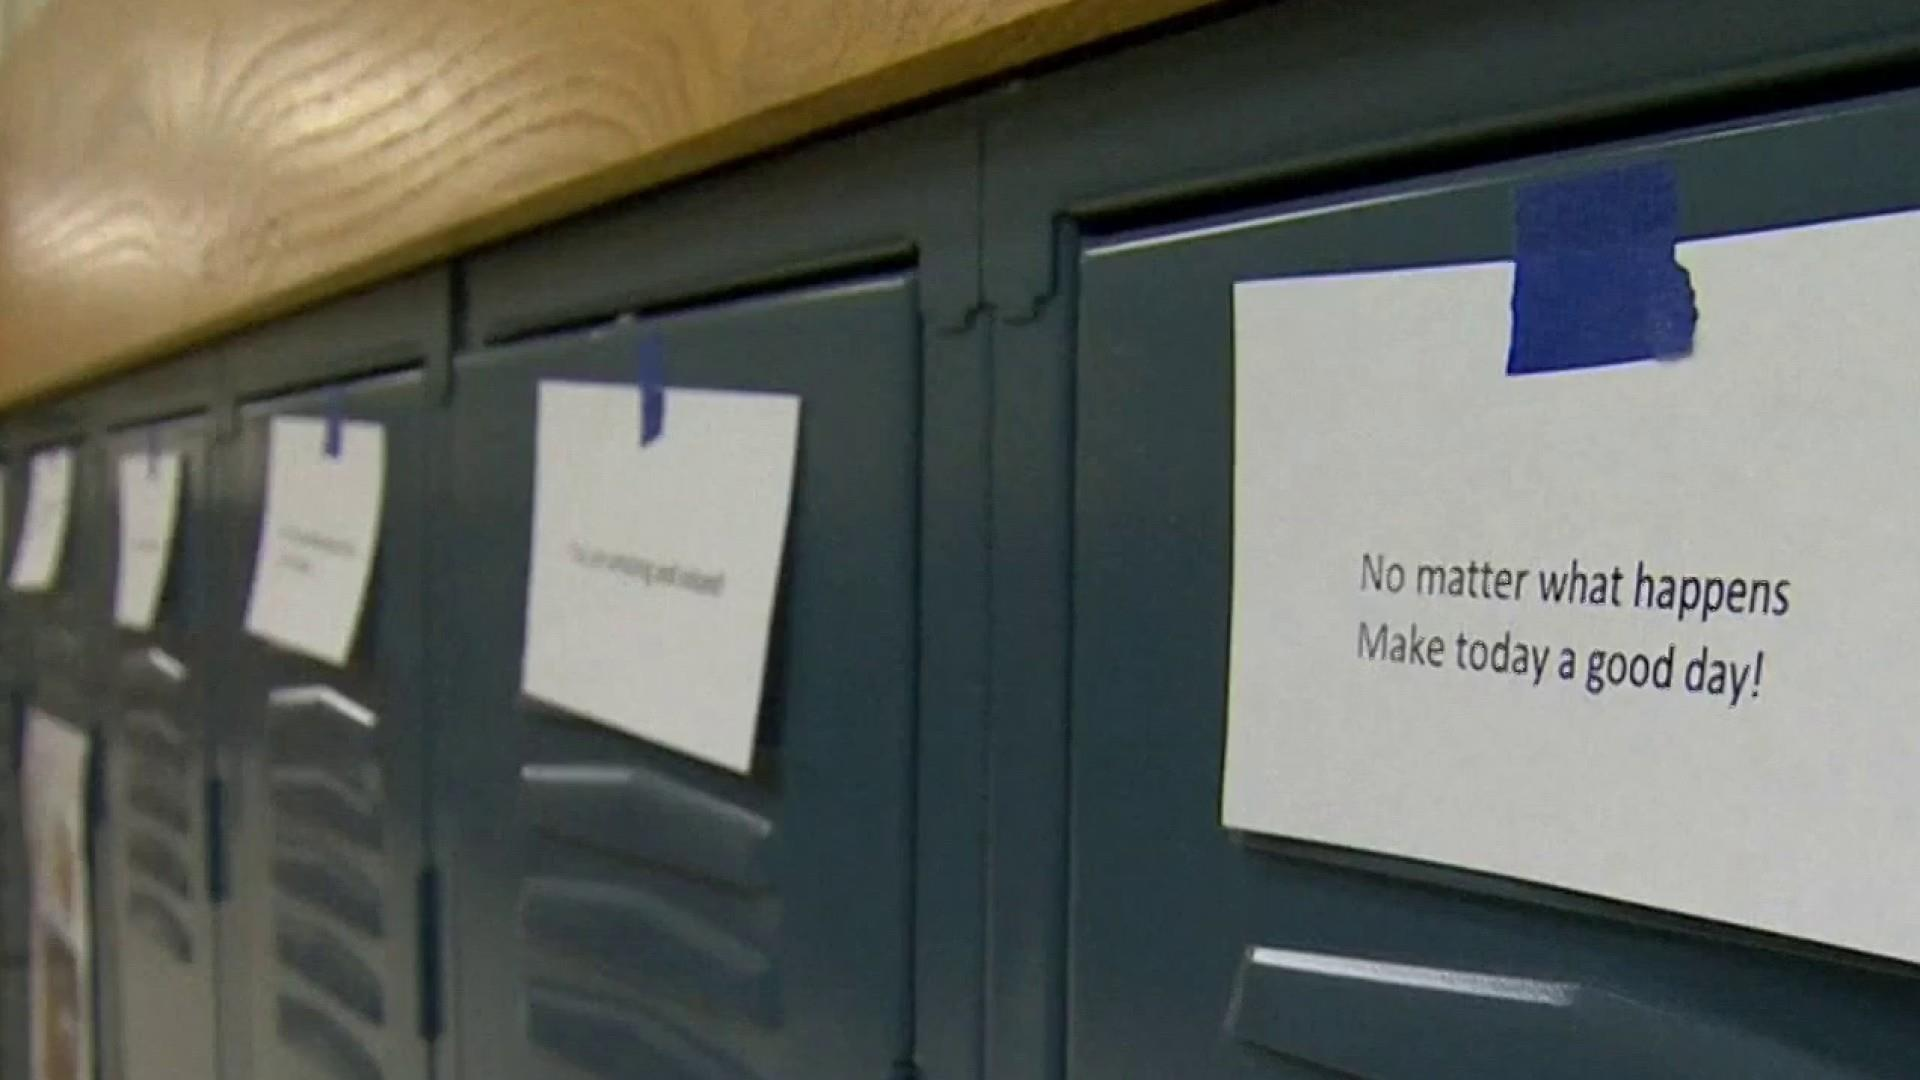 #GoodNewsRuhles: High school students in Indiana post kindness messages